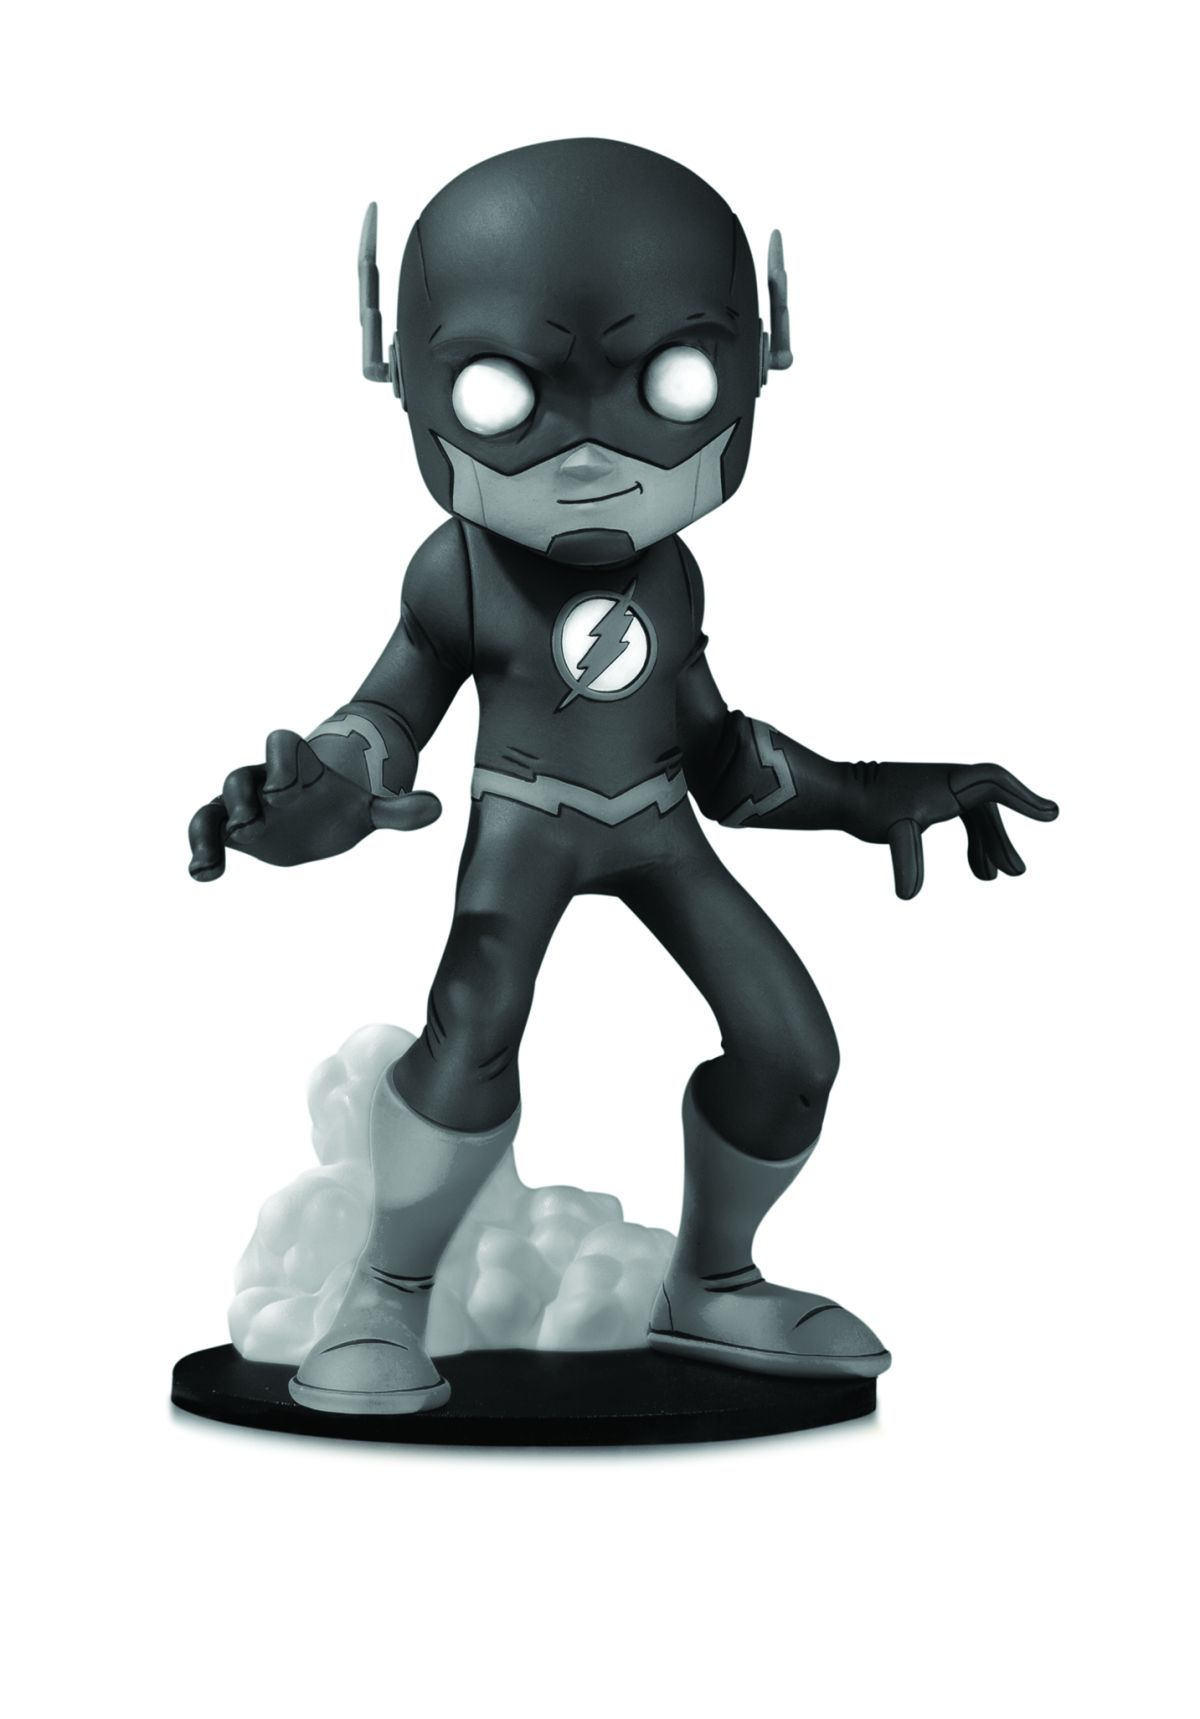 DC ARTISTS ALLEY: THE FLASH BY CHRIS UMINGA BLACK AND WHITE VARIANT FIGURE DESIGNER VINYL FIGURE